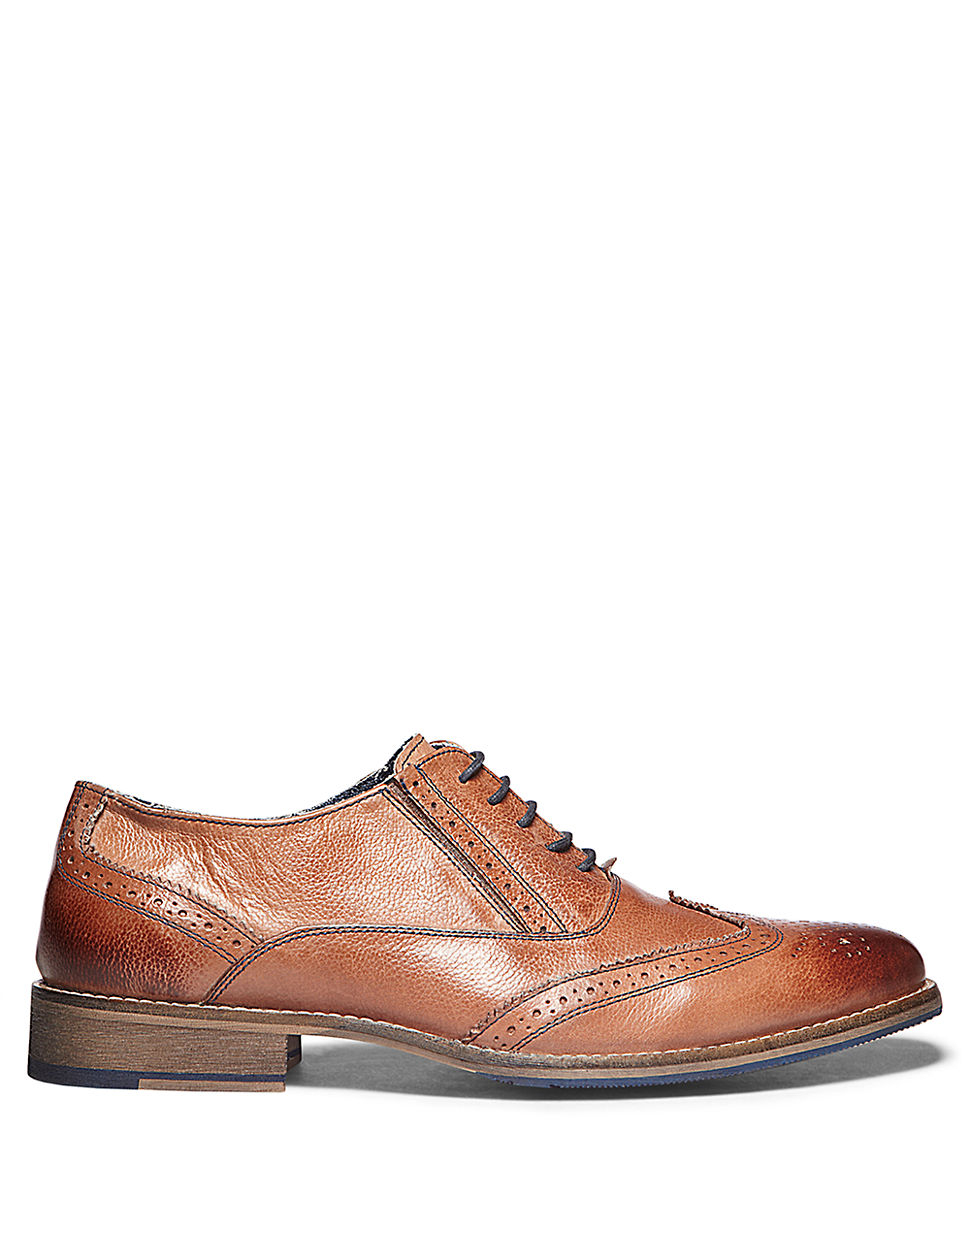 4aec4647a45 Steve Madden - Brown Virgo Leather Wingtip Oxfords for Men - Lyst